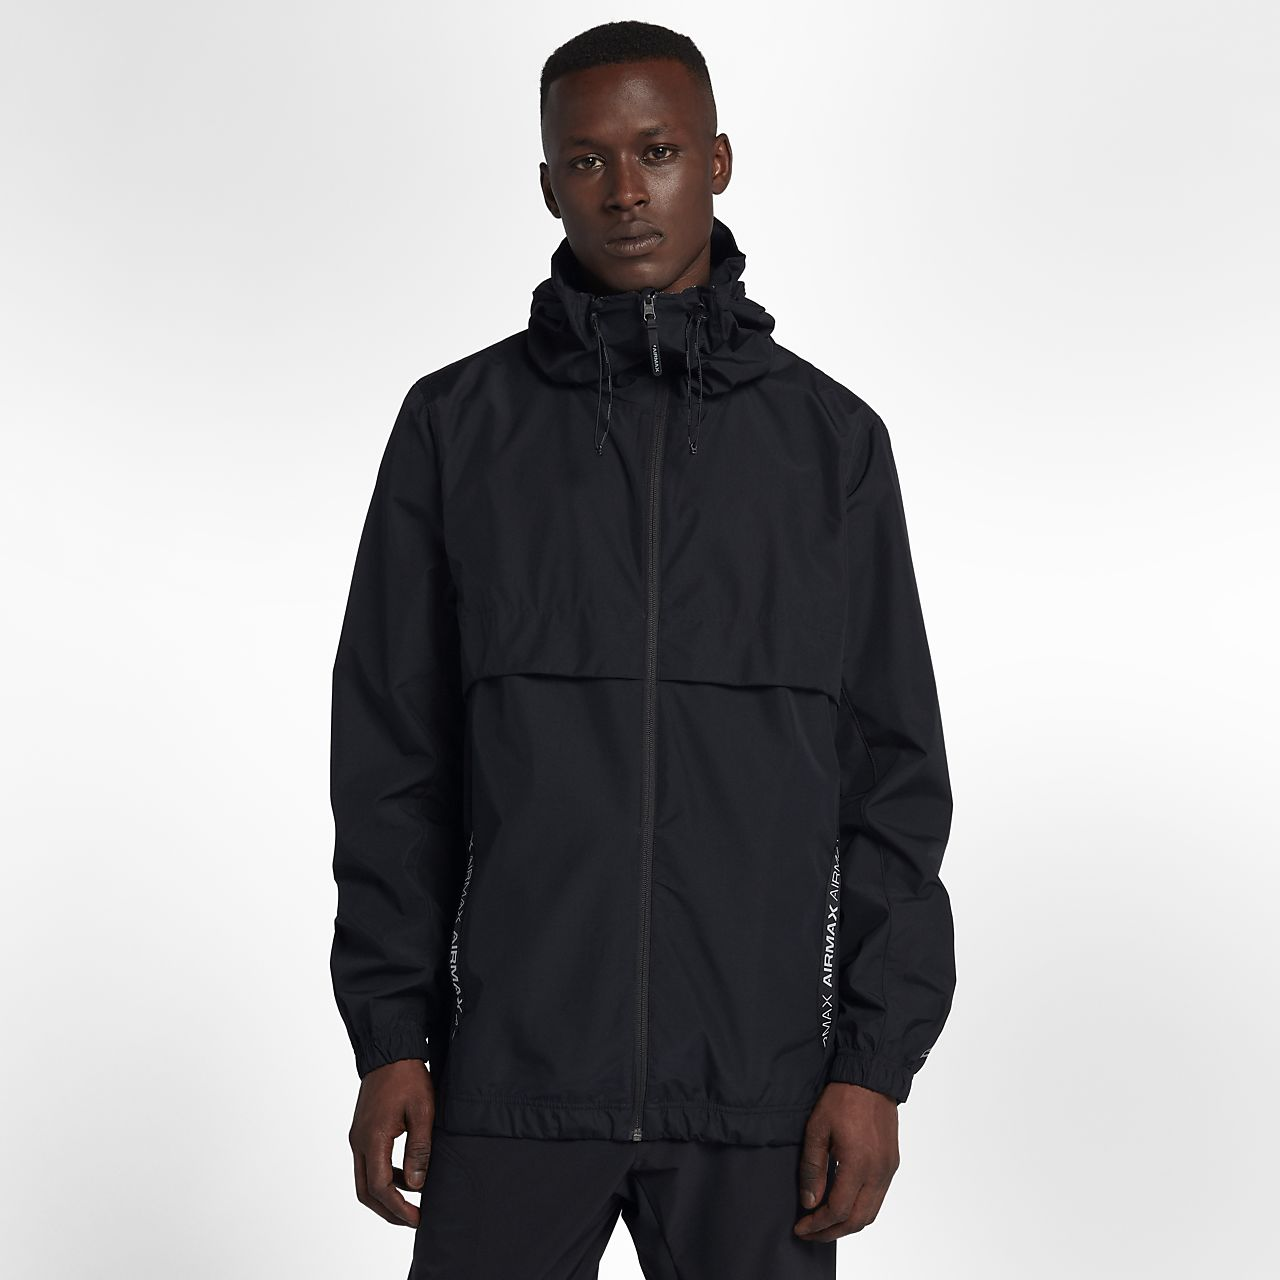 18e72a2c1b Nike Sportswear Air Max Men s Reversible Jacket. Nike.com